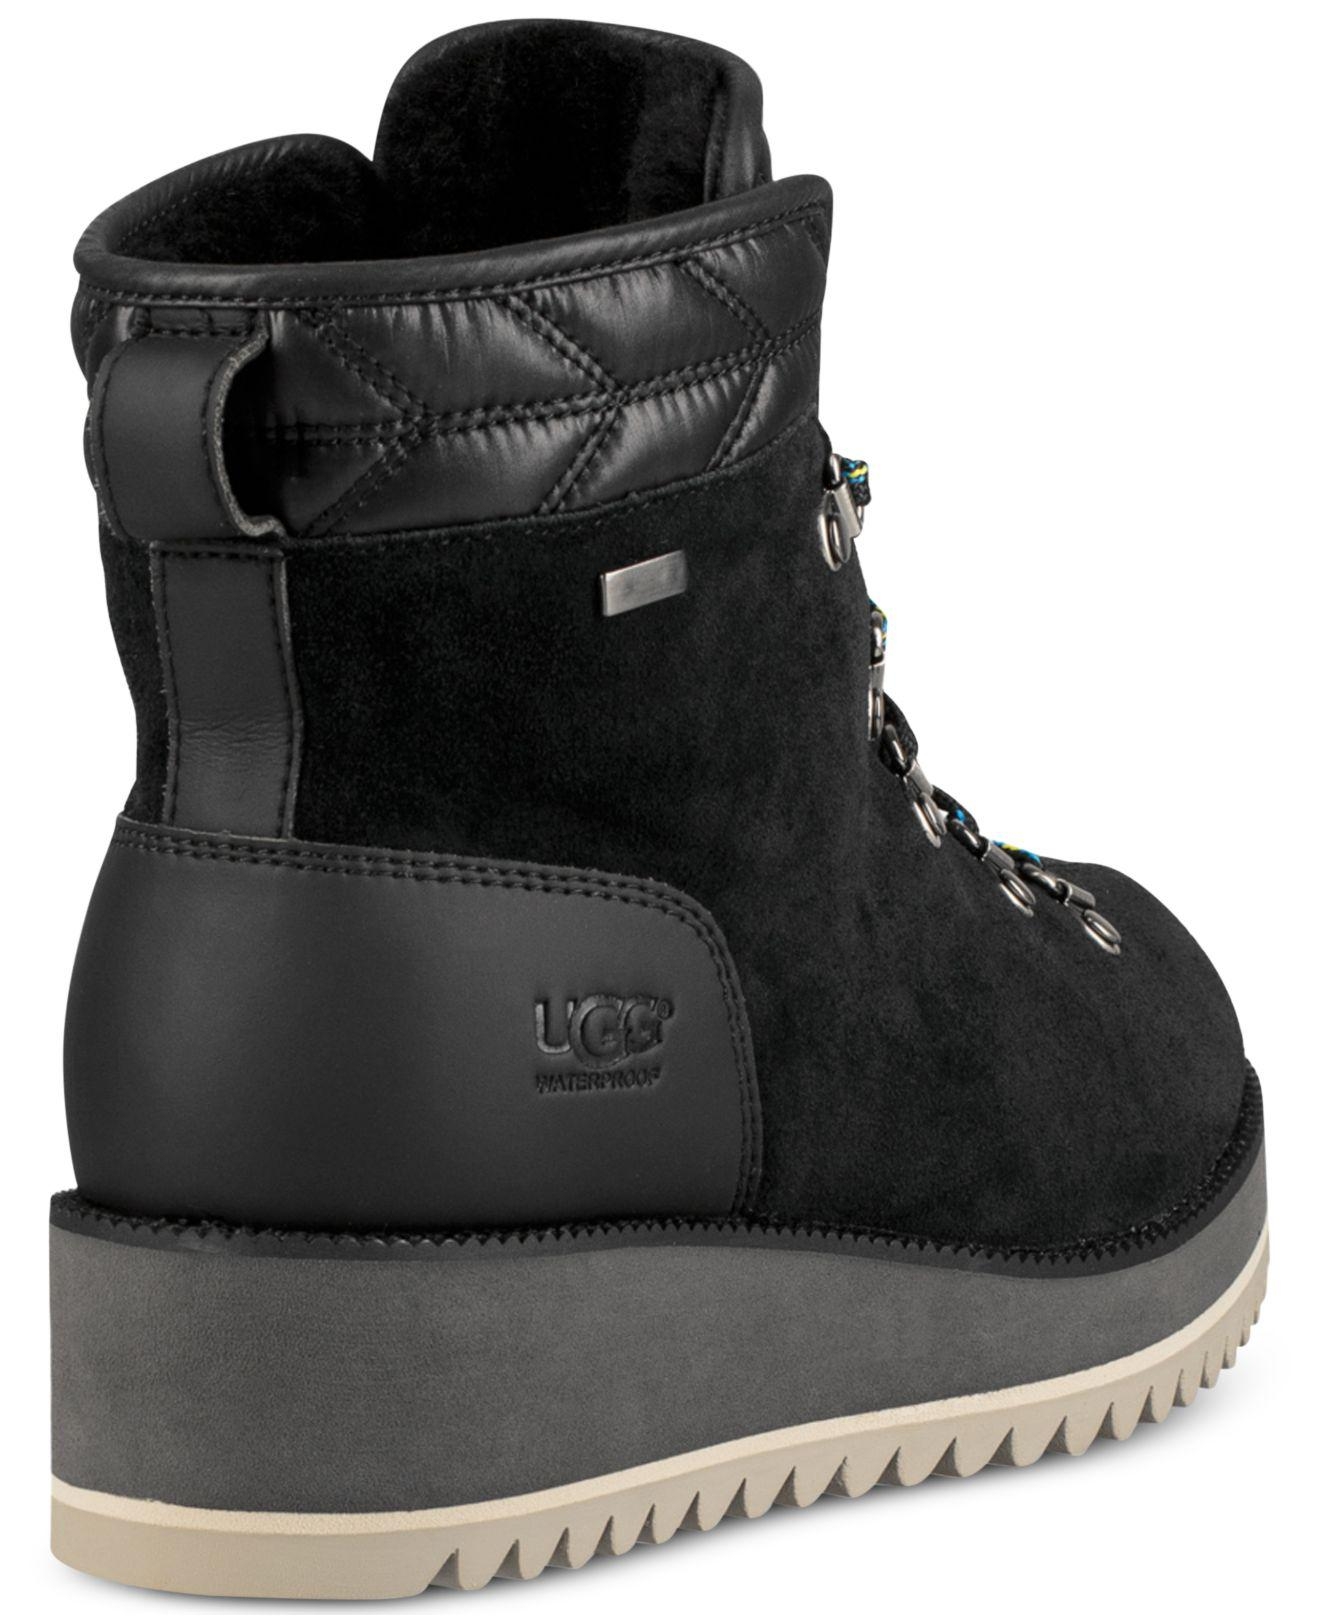 bd5cb3ef322 Lyst - UGG Birch Lace-up Boots in Black